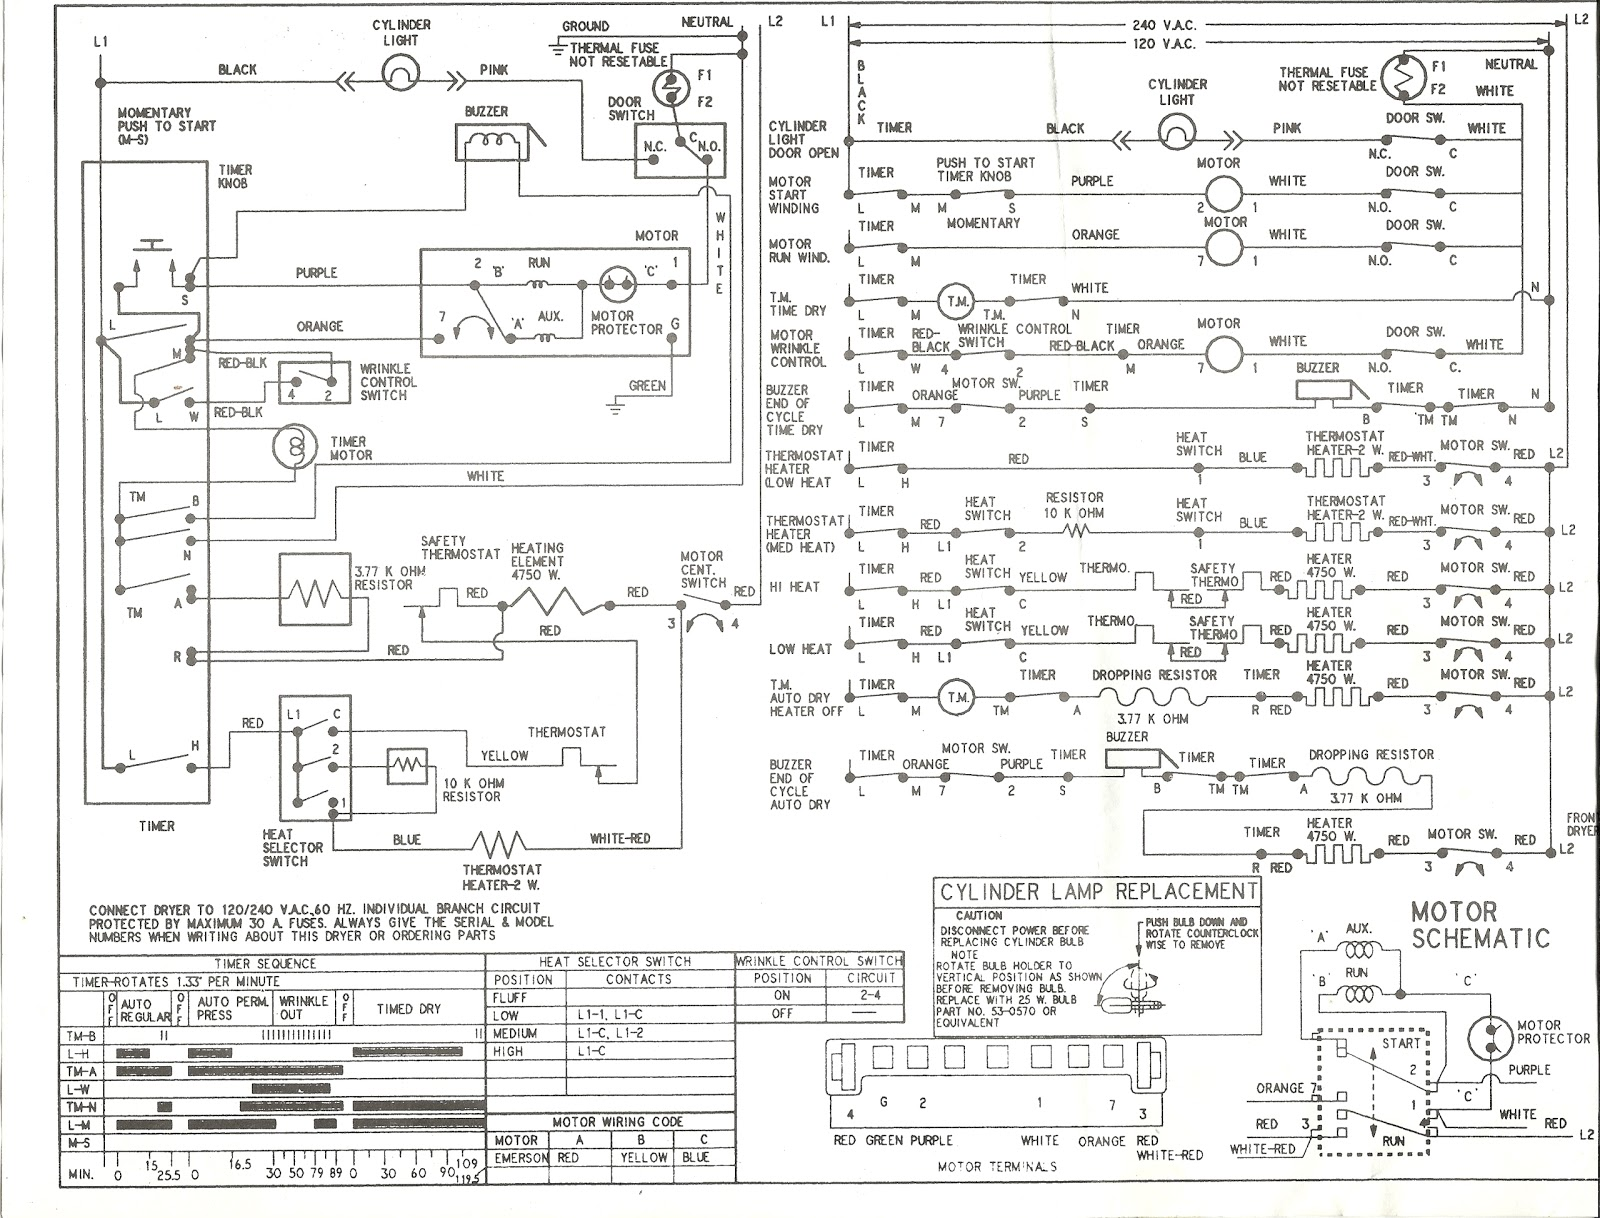 Appliance Talk: Kenmore Series Electric Dryer Wiring Diagram - SchematicAppliance Talk